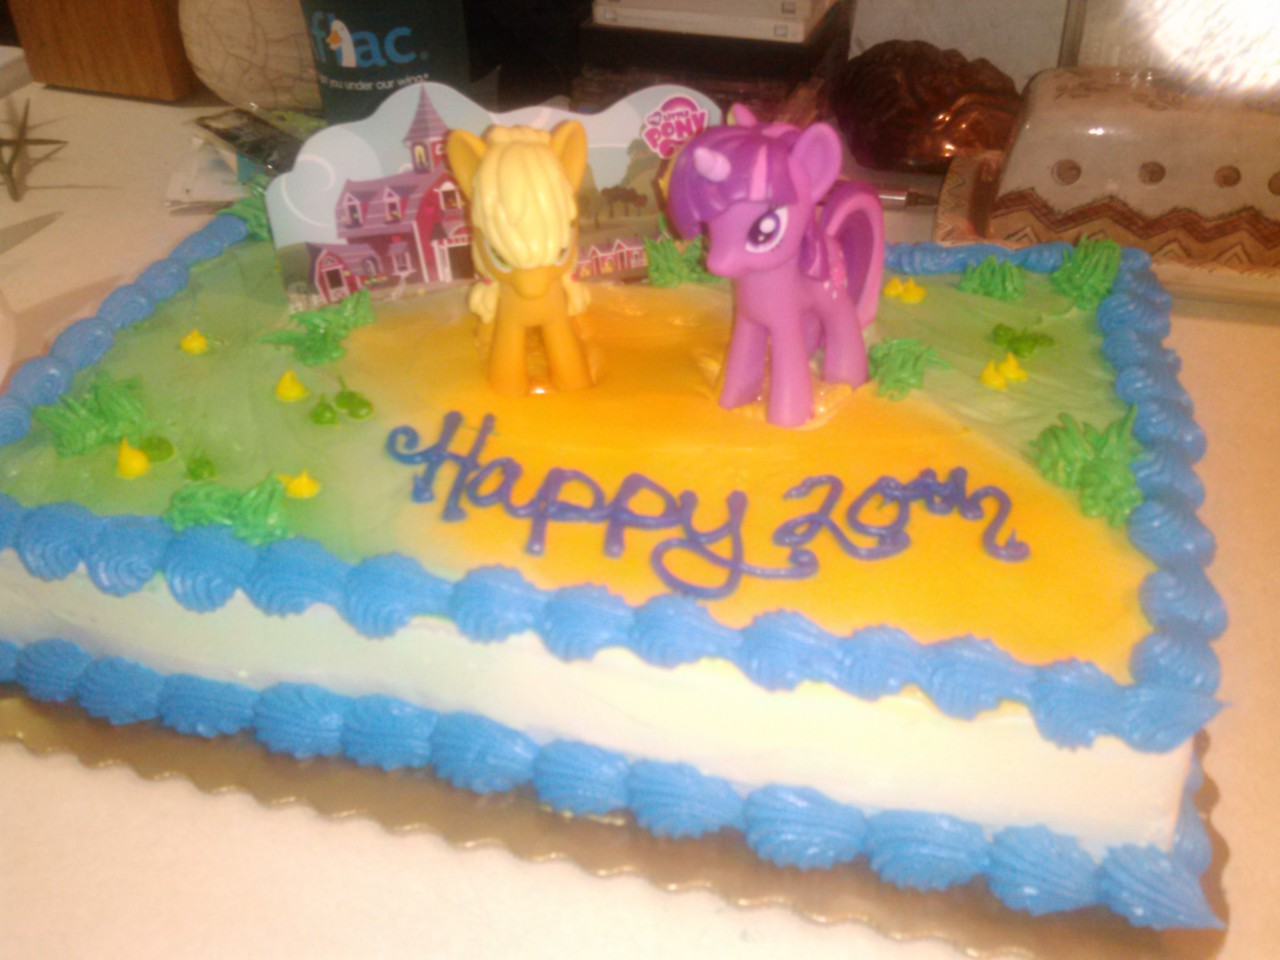 685872 Applejack Birthday Cake Food Irl Safe Toy Twilight